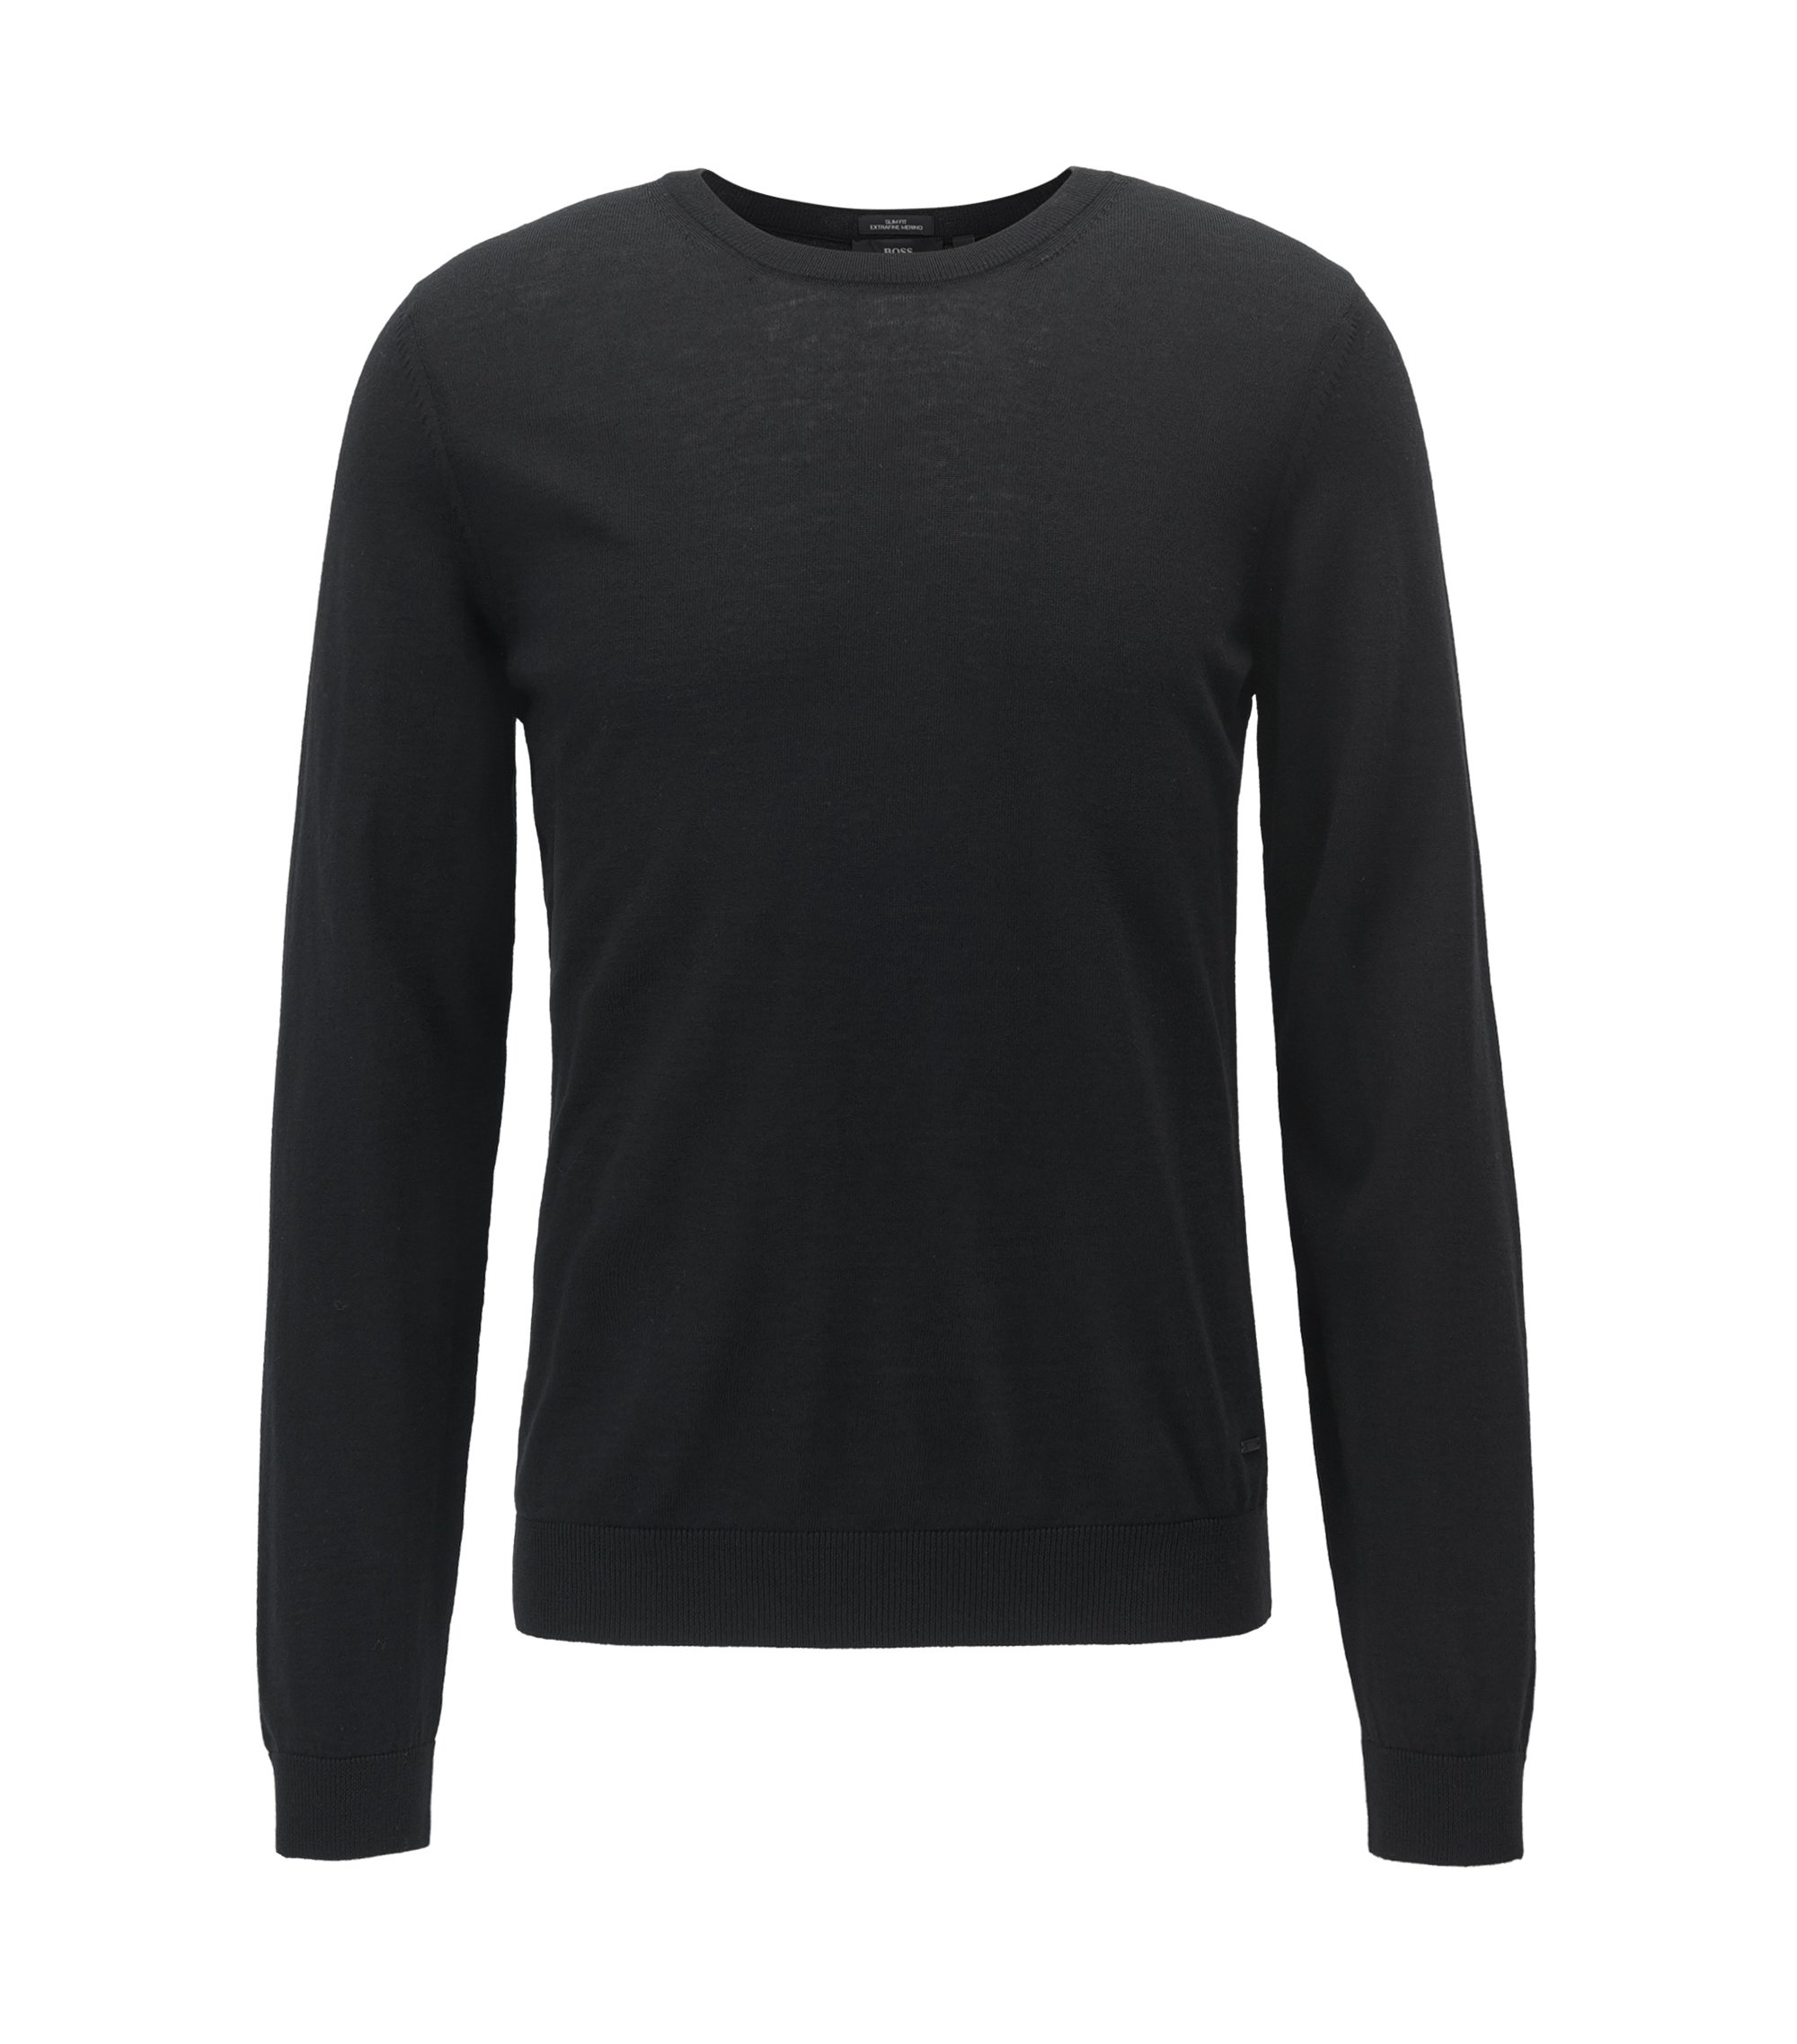 Crew-neck sweater in virgin wool, Black